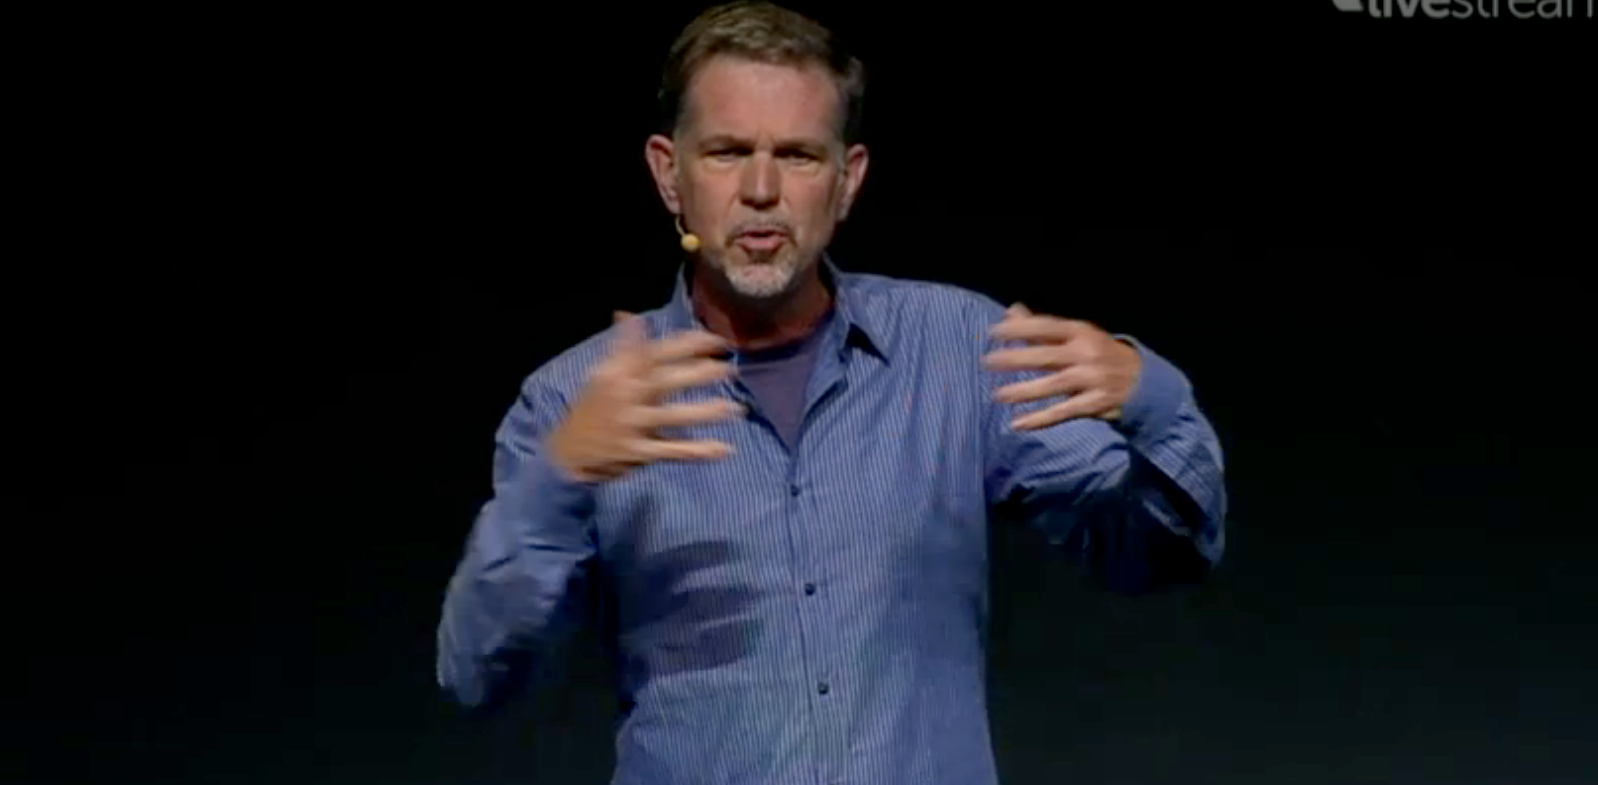 Netflix CEO Reed Hastings announces integration with Facebook in 44 countries, but NOT the US